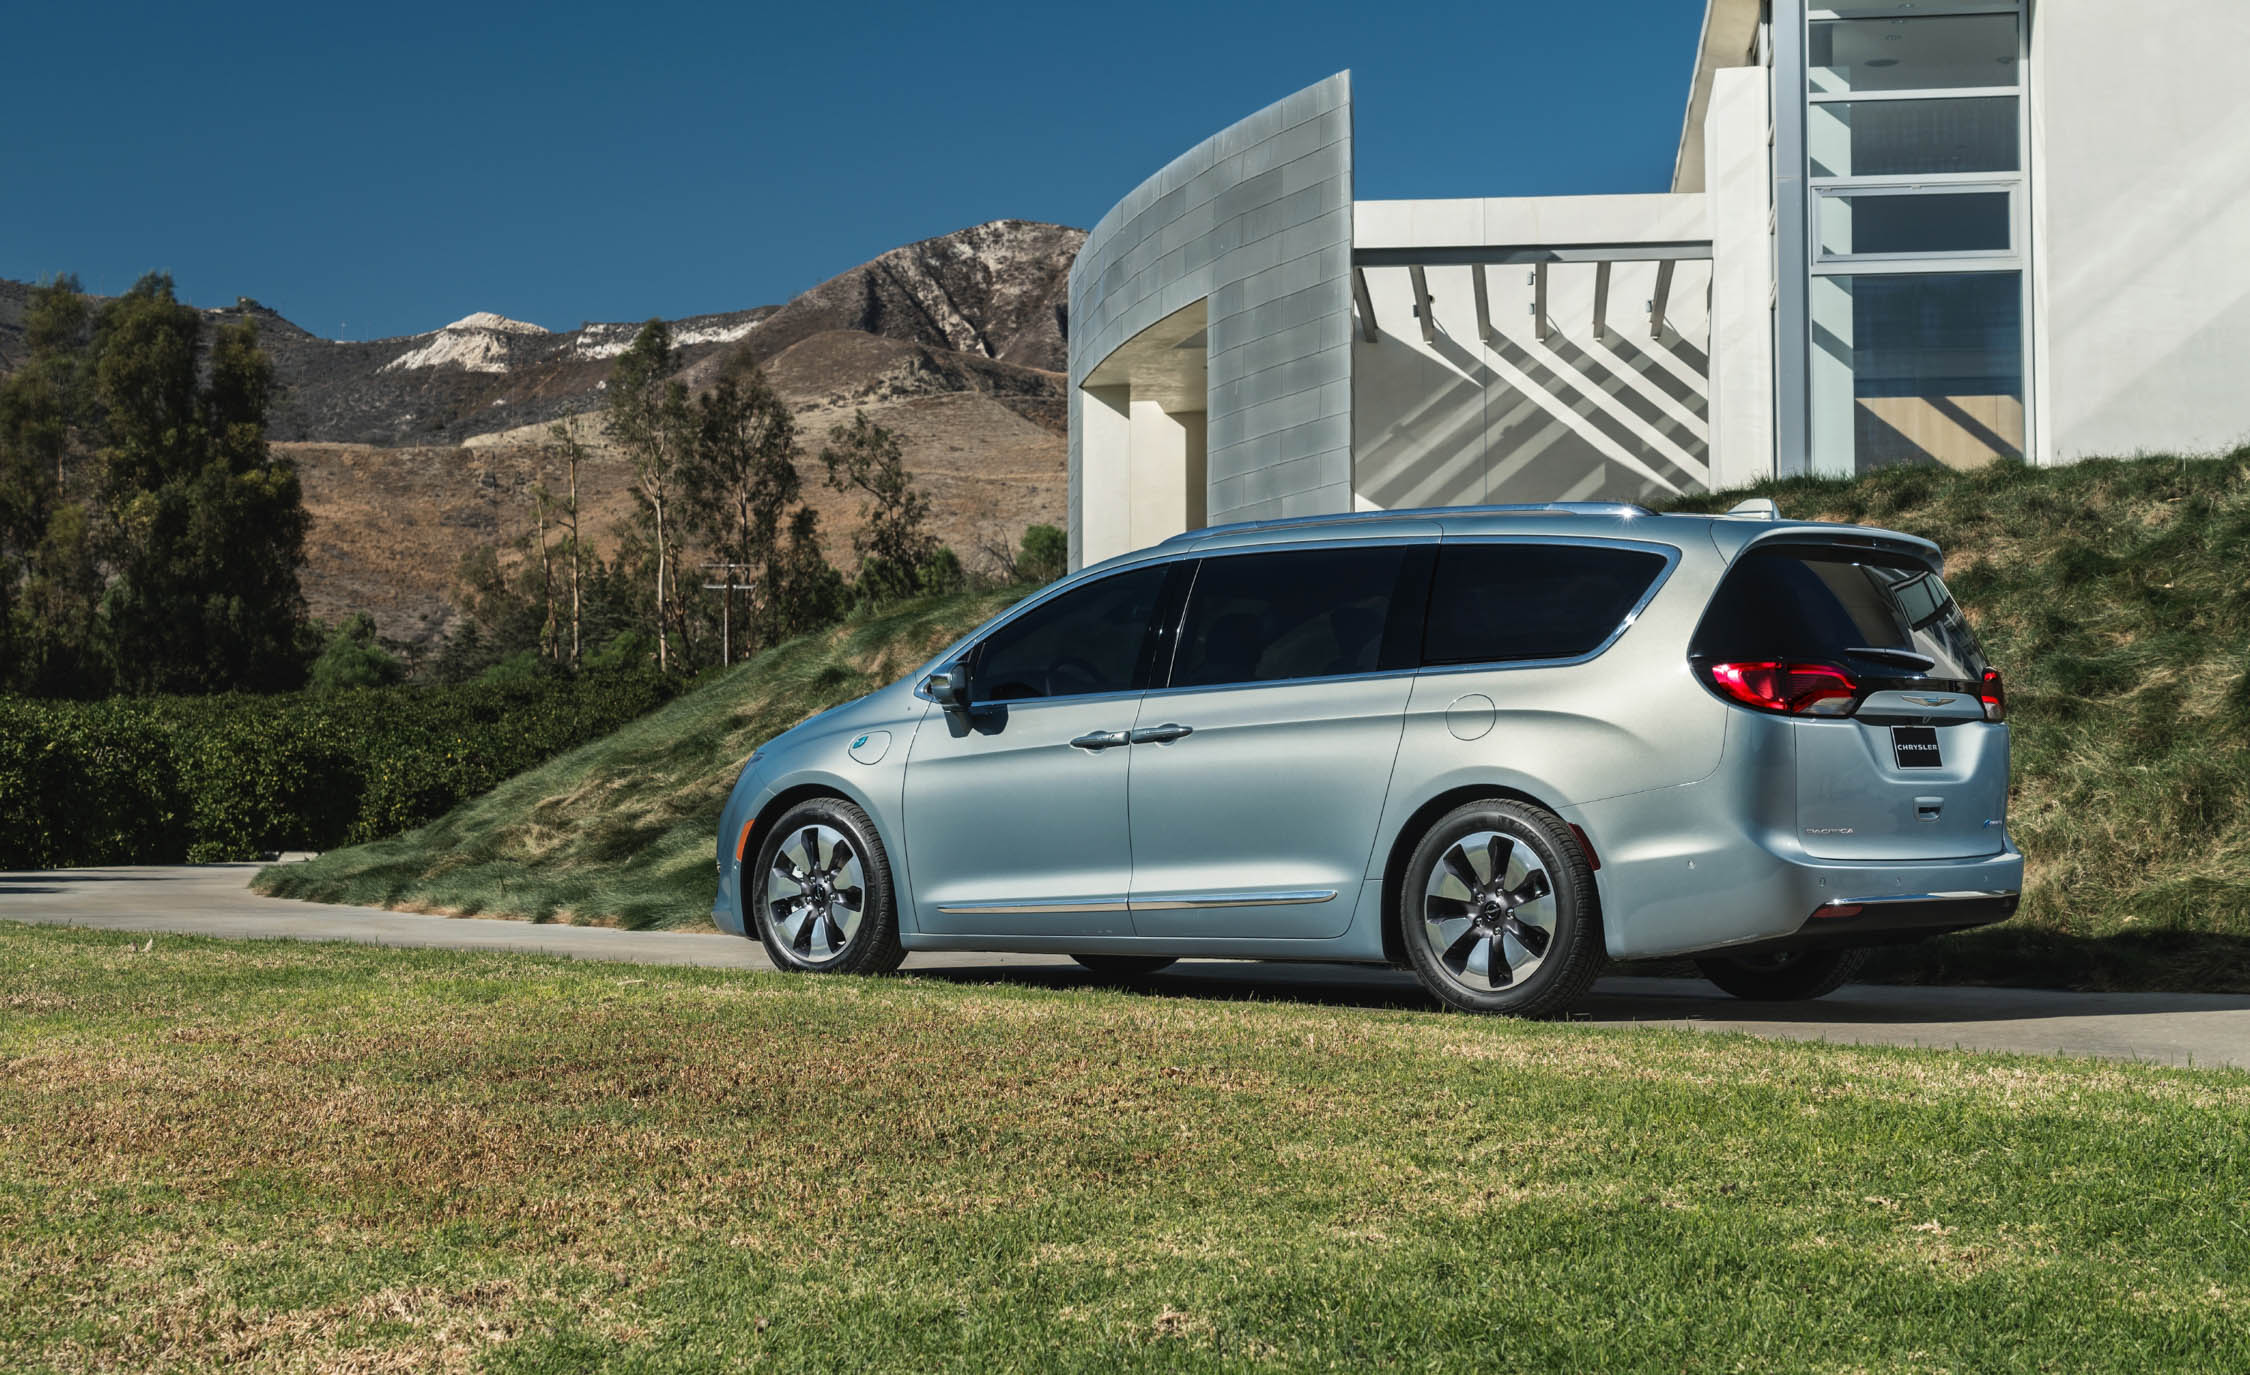 2017 Chrysler Pacifica Hybrid (Photo 2 of 10)